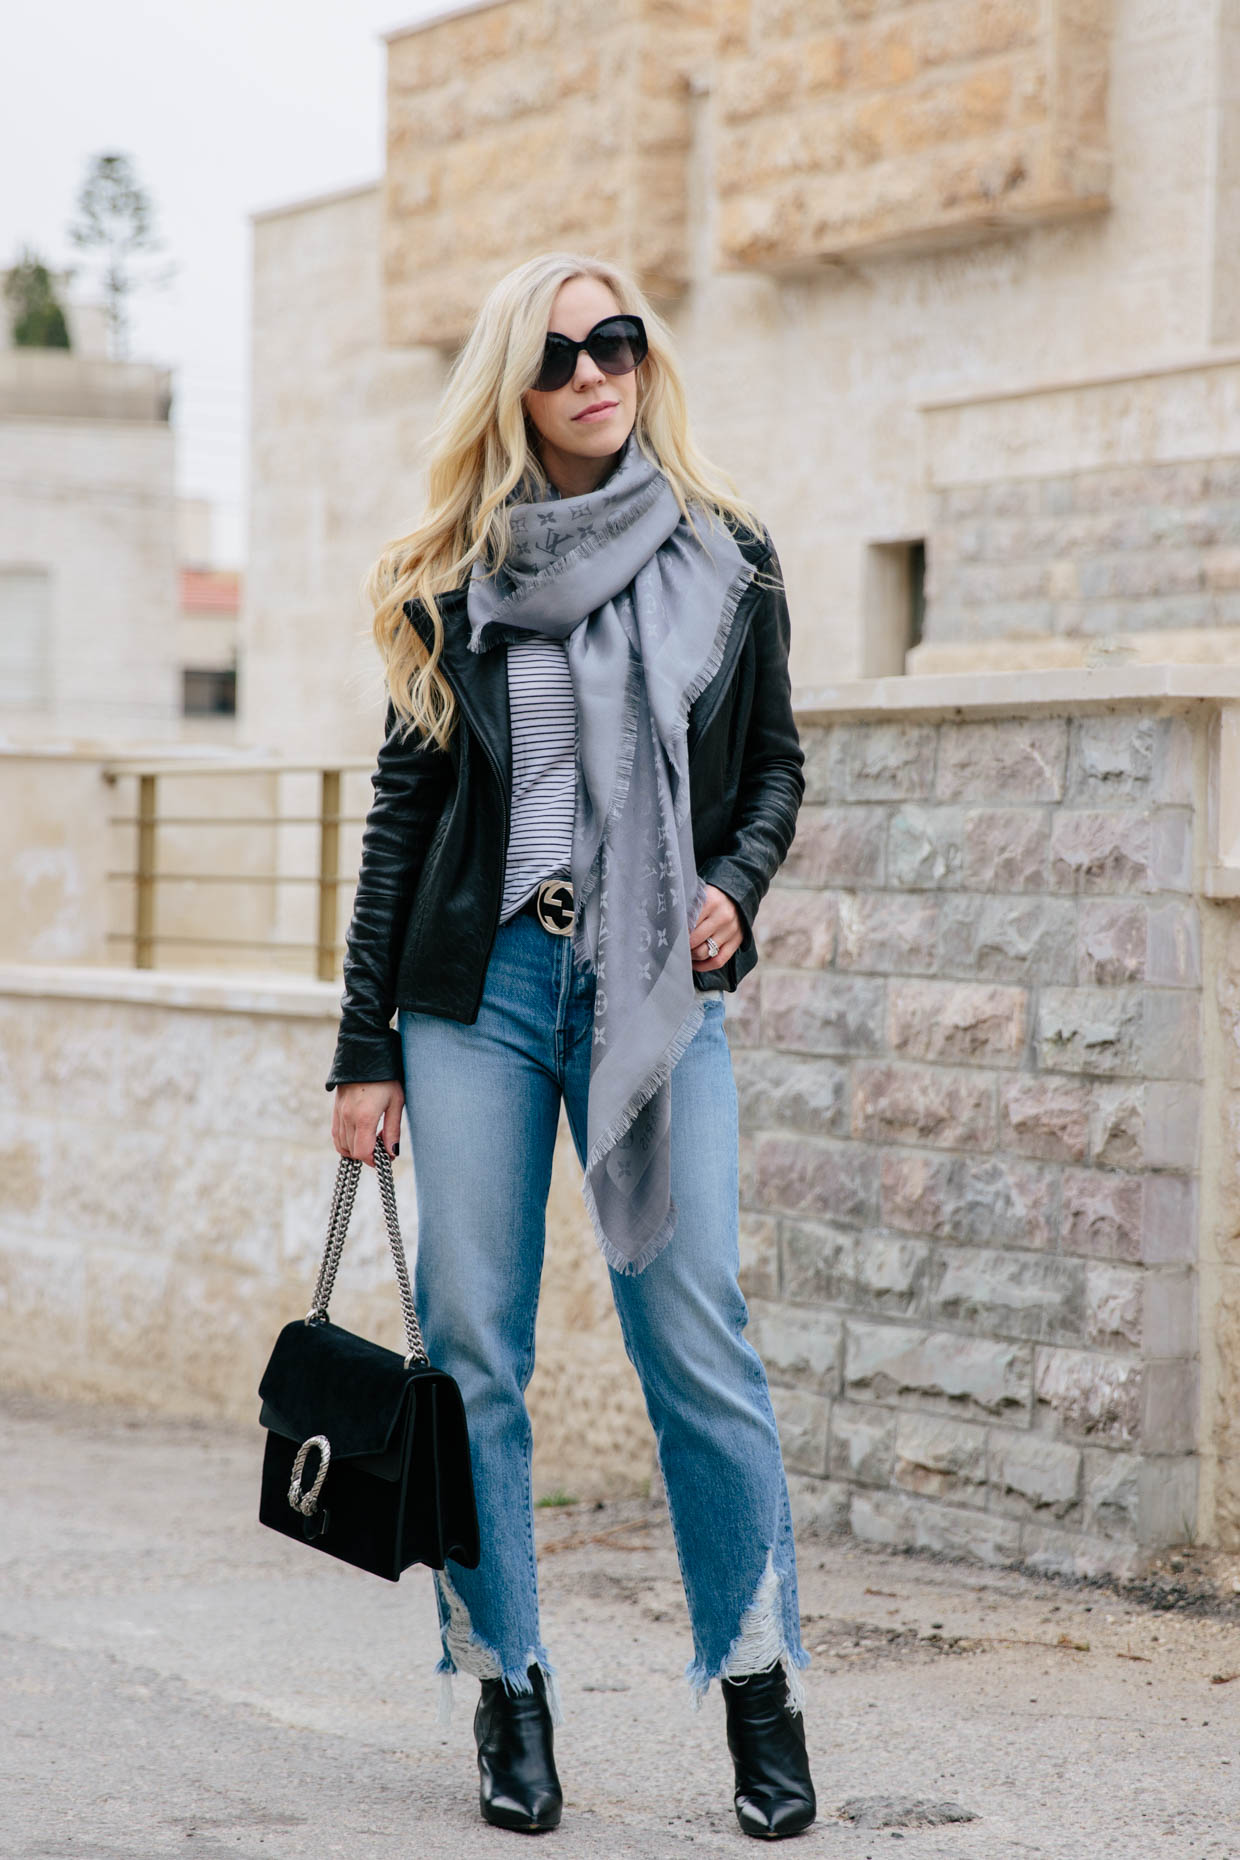 All Season Layered Look With A Leather Jacket Amp Straight